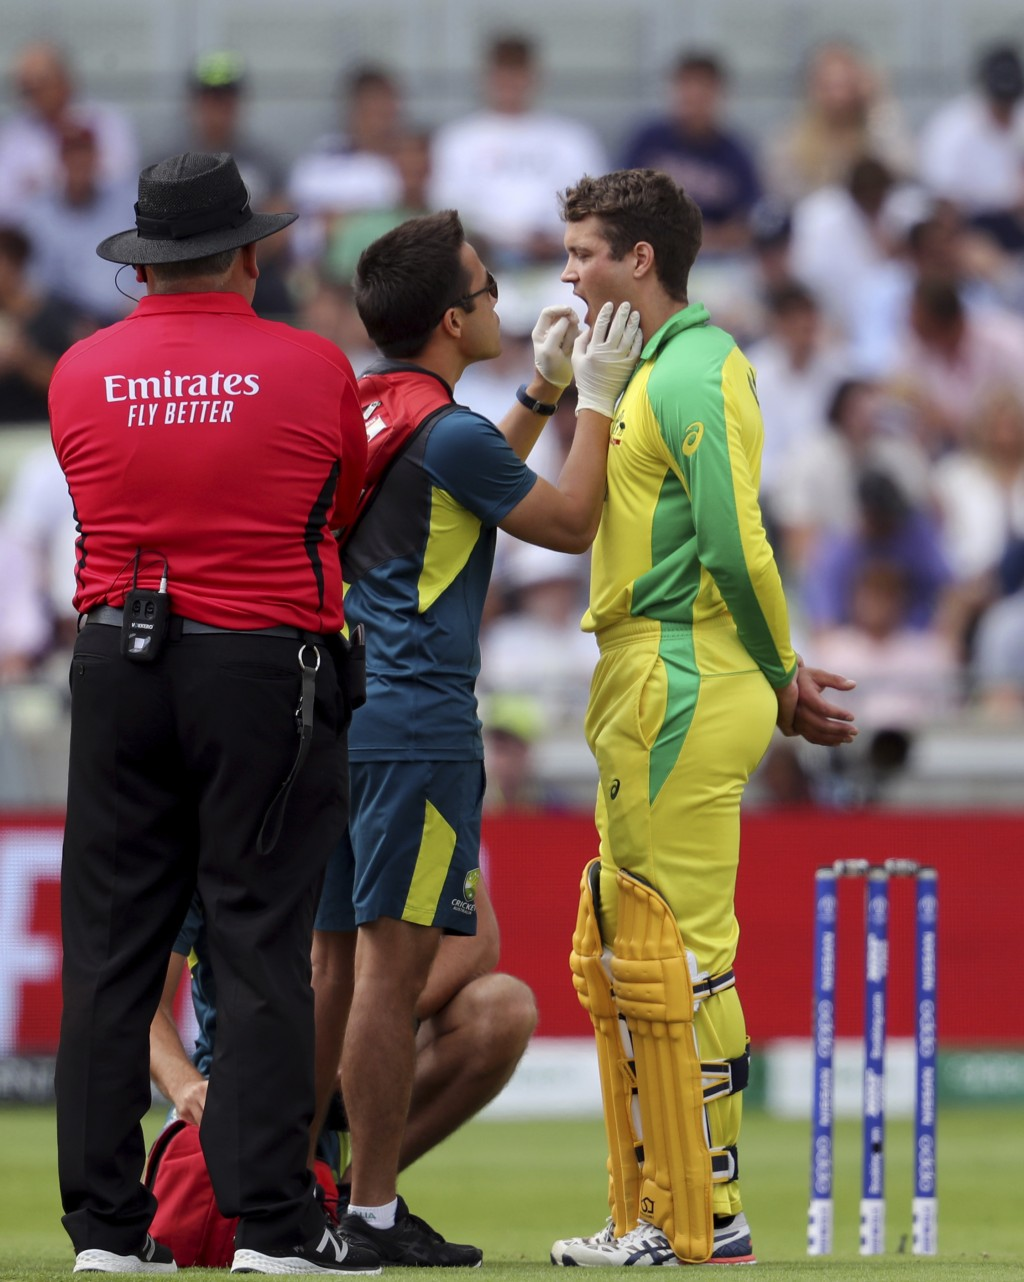 Australia's batsman Alex Carey, right, gets some treatment form a team-medic after hit on his chin by a delivery from England's Chris Woakes during th...